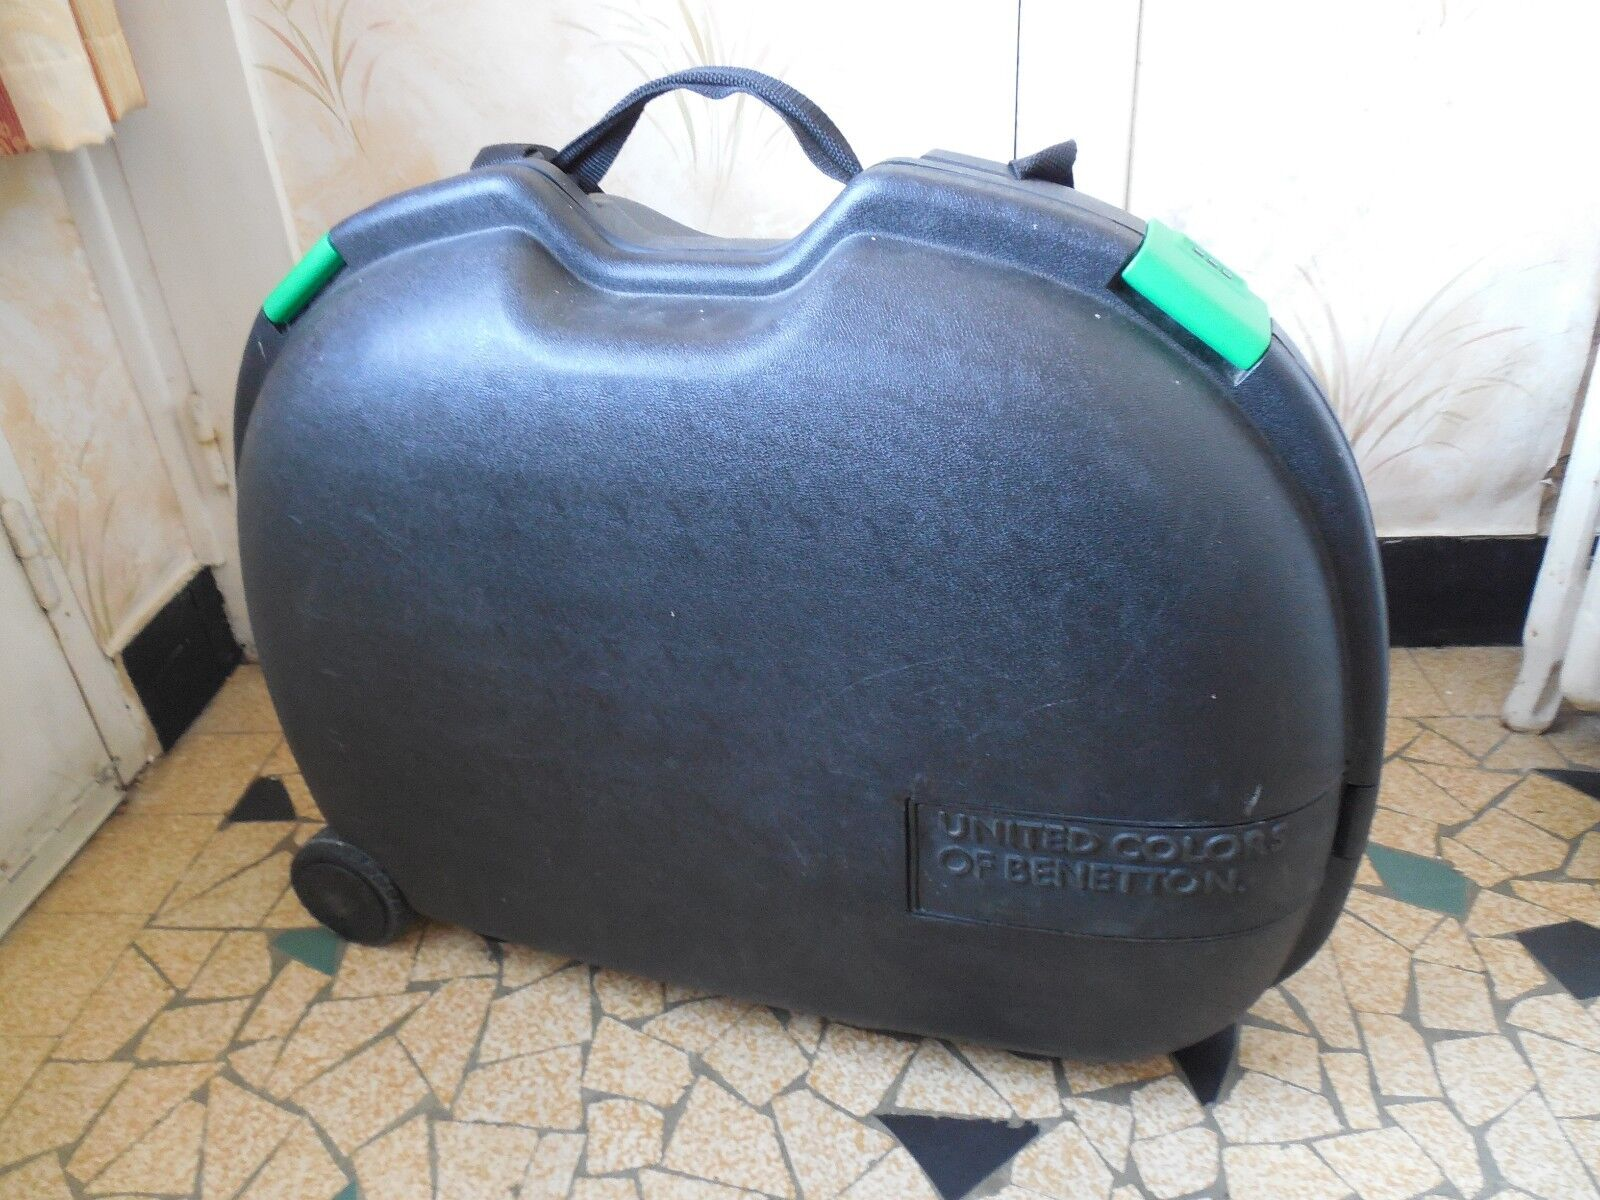 VALISE UNITED CouleurS OF BENETTON